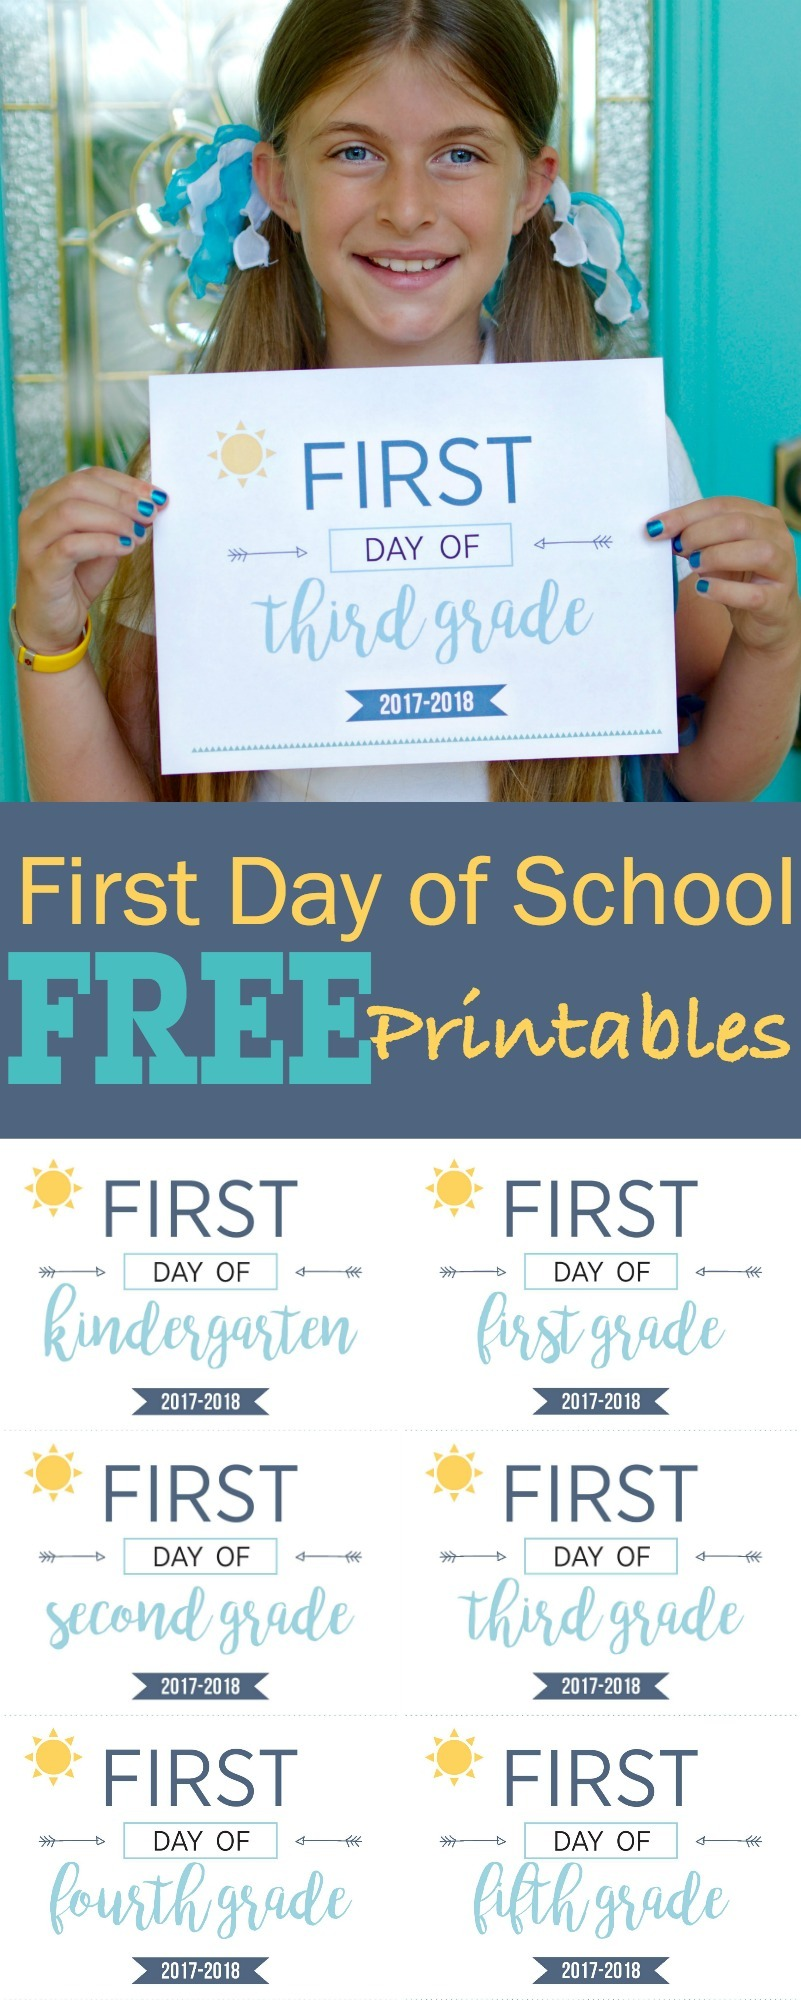 First Day of School Printables. Capture those moments as kids head back to school and watch them as they grow, year after year. FREE Back to School Printables Sunshine and Hurricanes. Last Day of School Printables Included as Well.